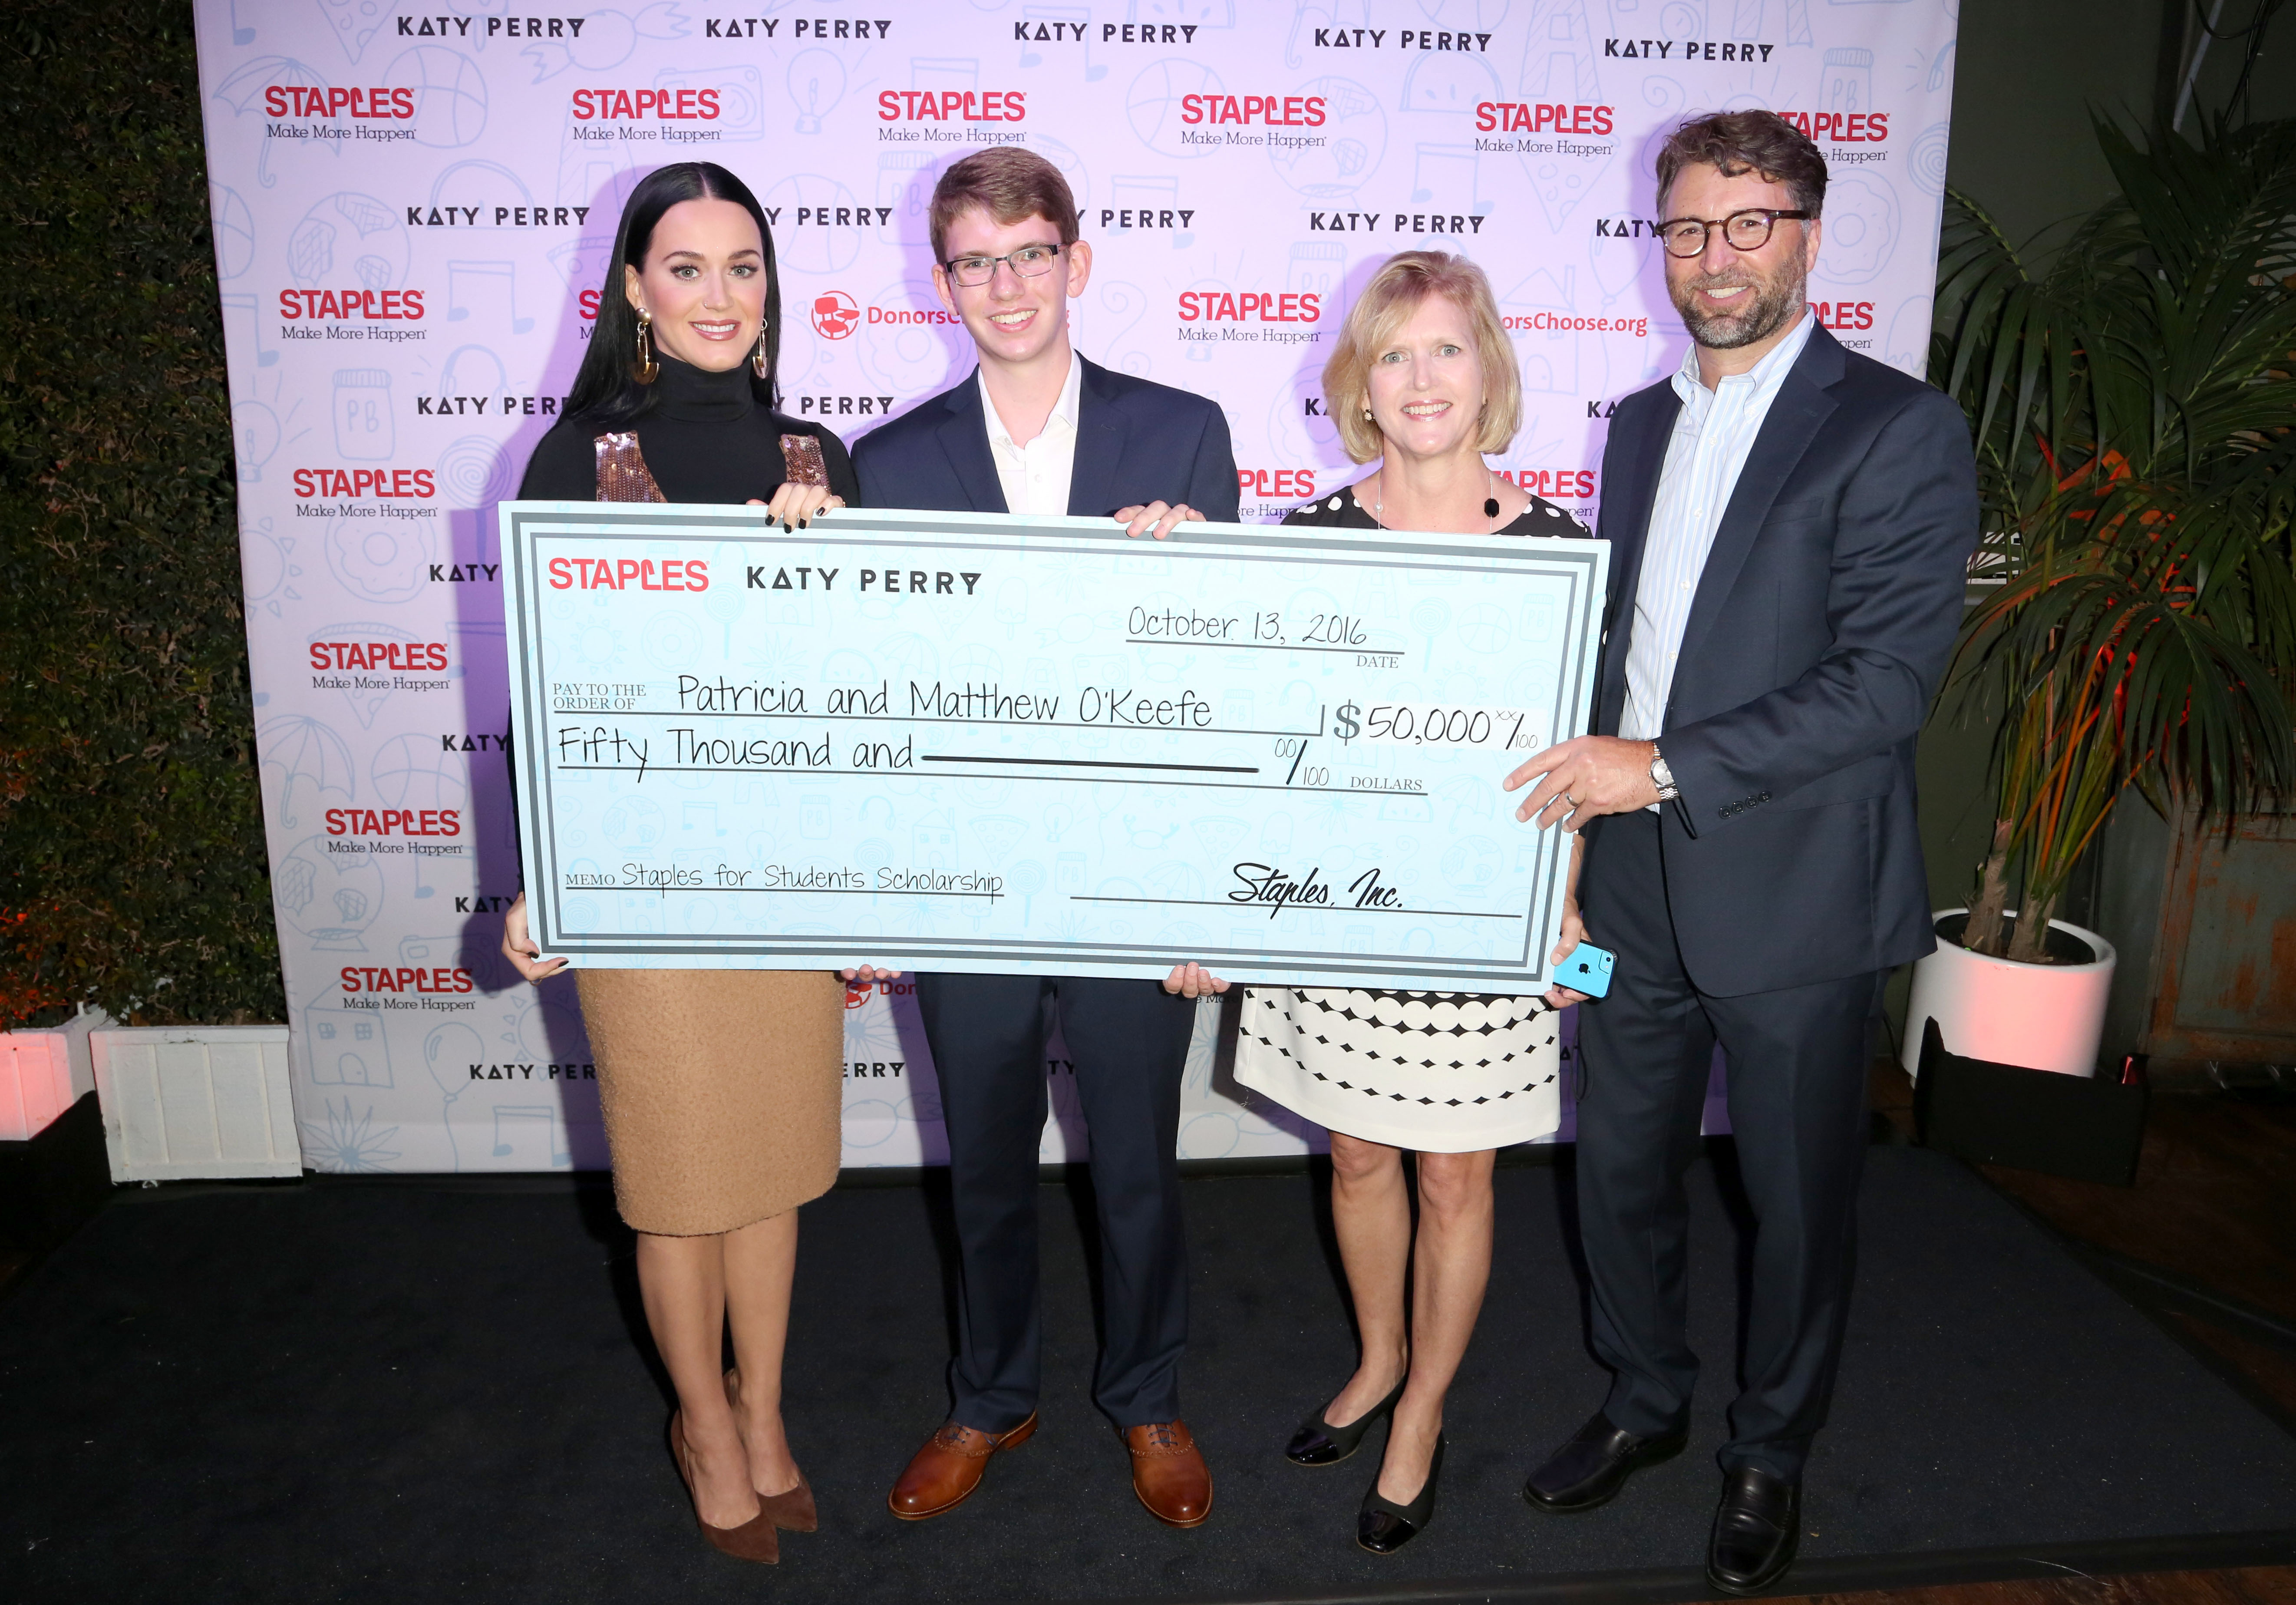 Staples and katy perry help teachers bring learning to life for staples and katy perry help teachers bring learning to life for thousands of students nationwide business wire kristyandbryce Gallery